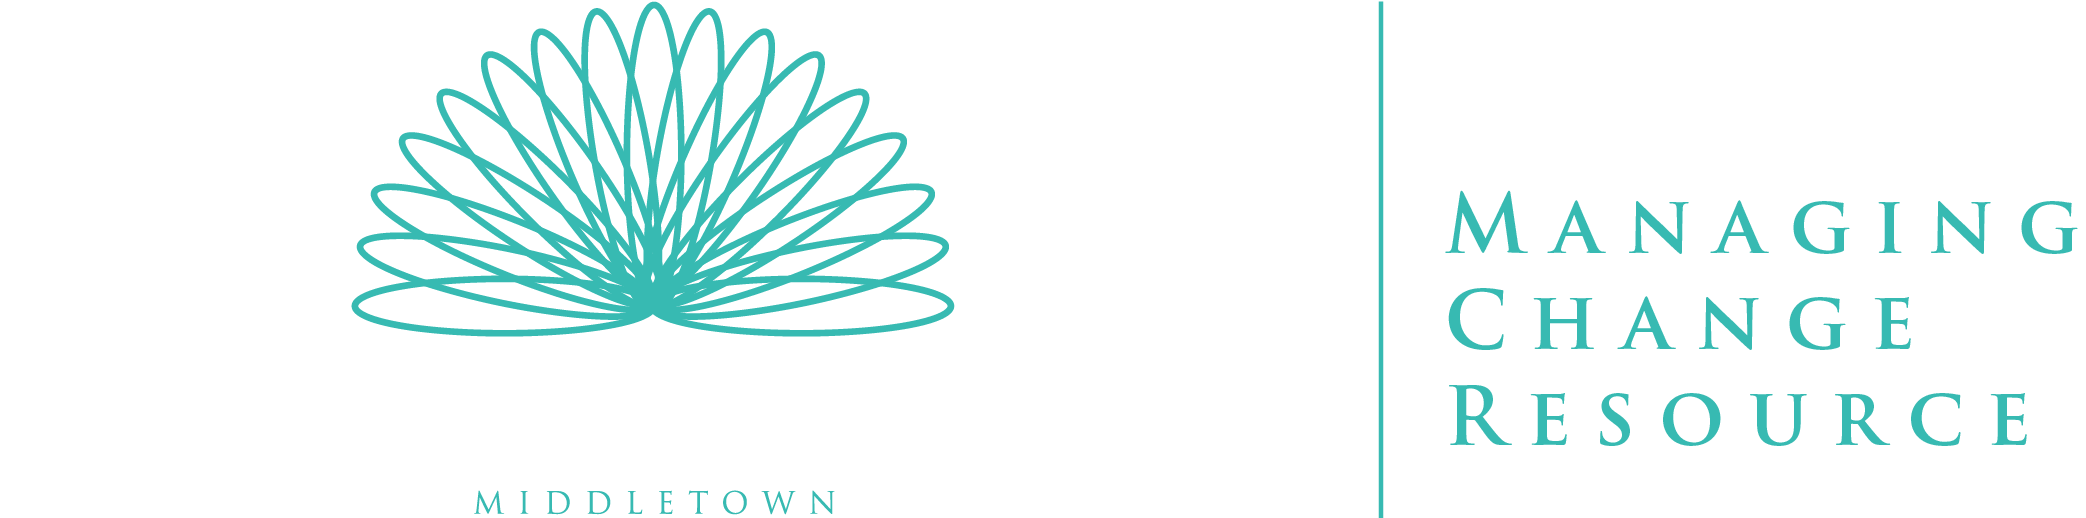 Change Resource Centre for Autism Capacity Resource logo